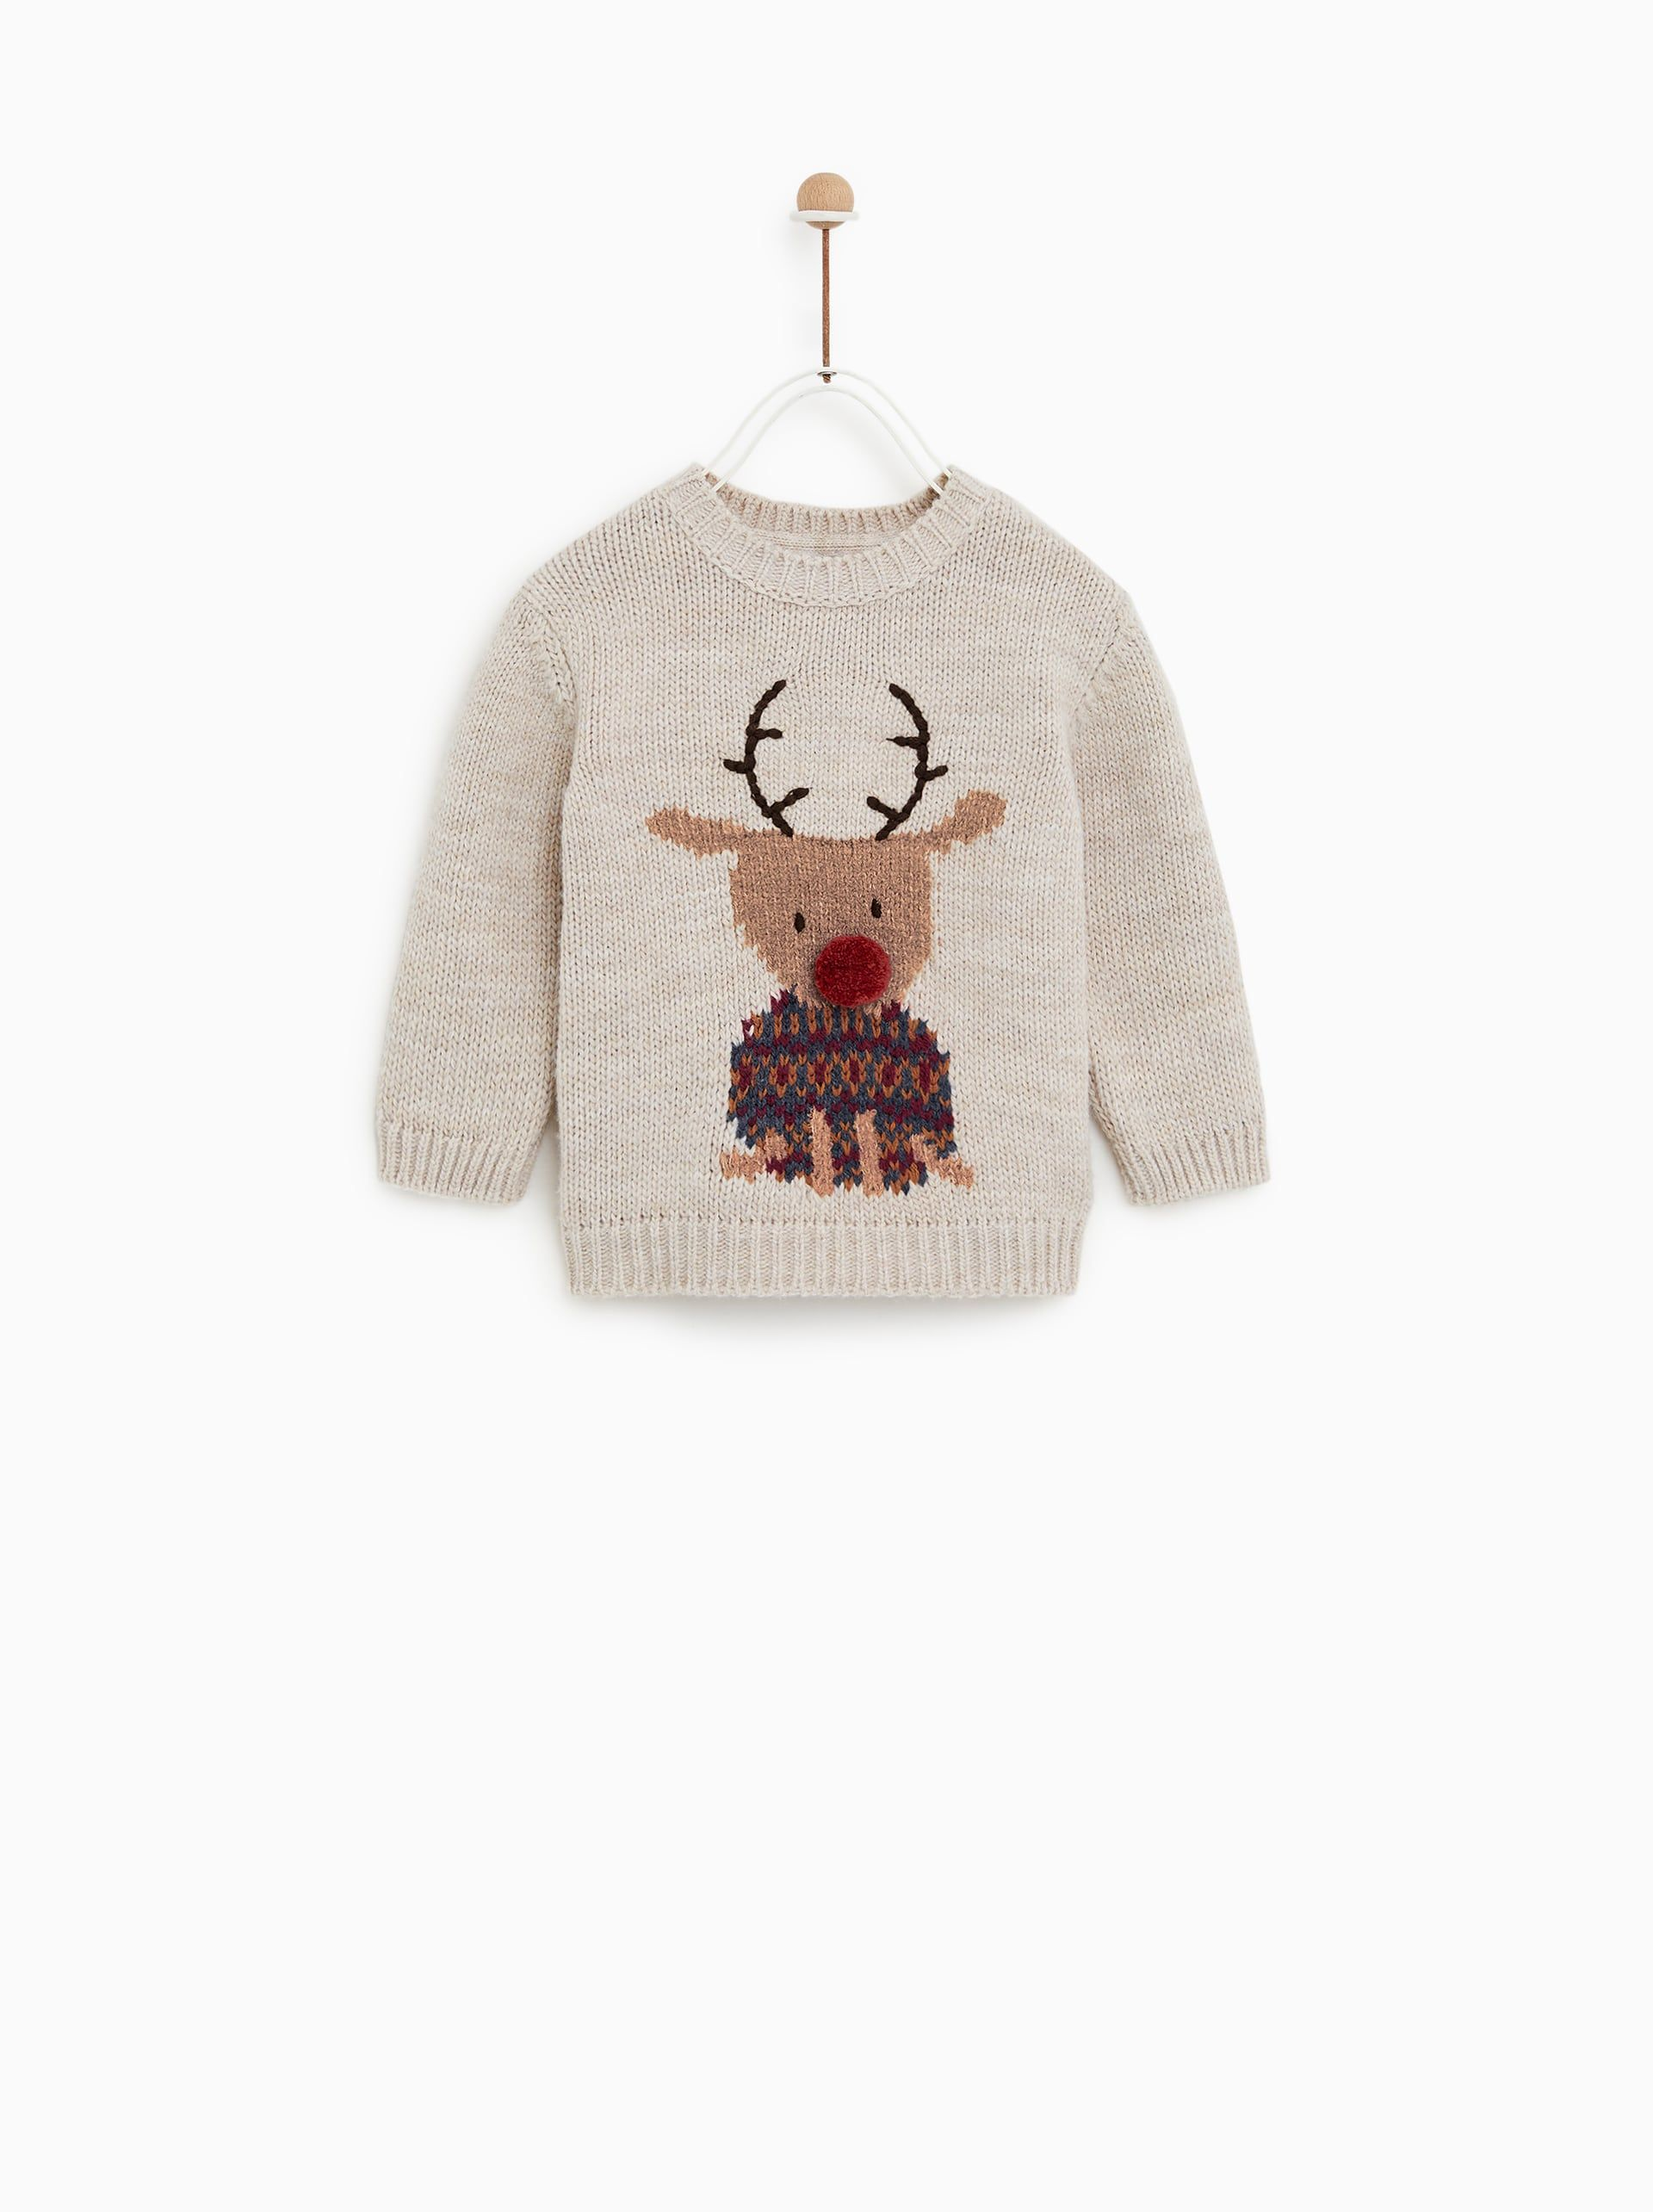 Ruffled knit sweater | Reindeer sweater, Sweaters, Boy outfits